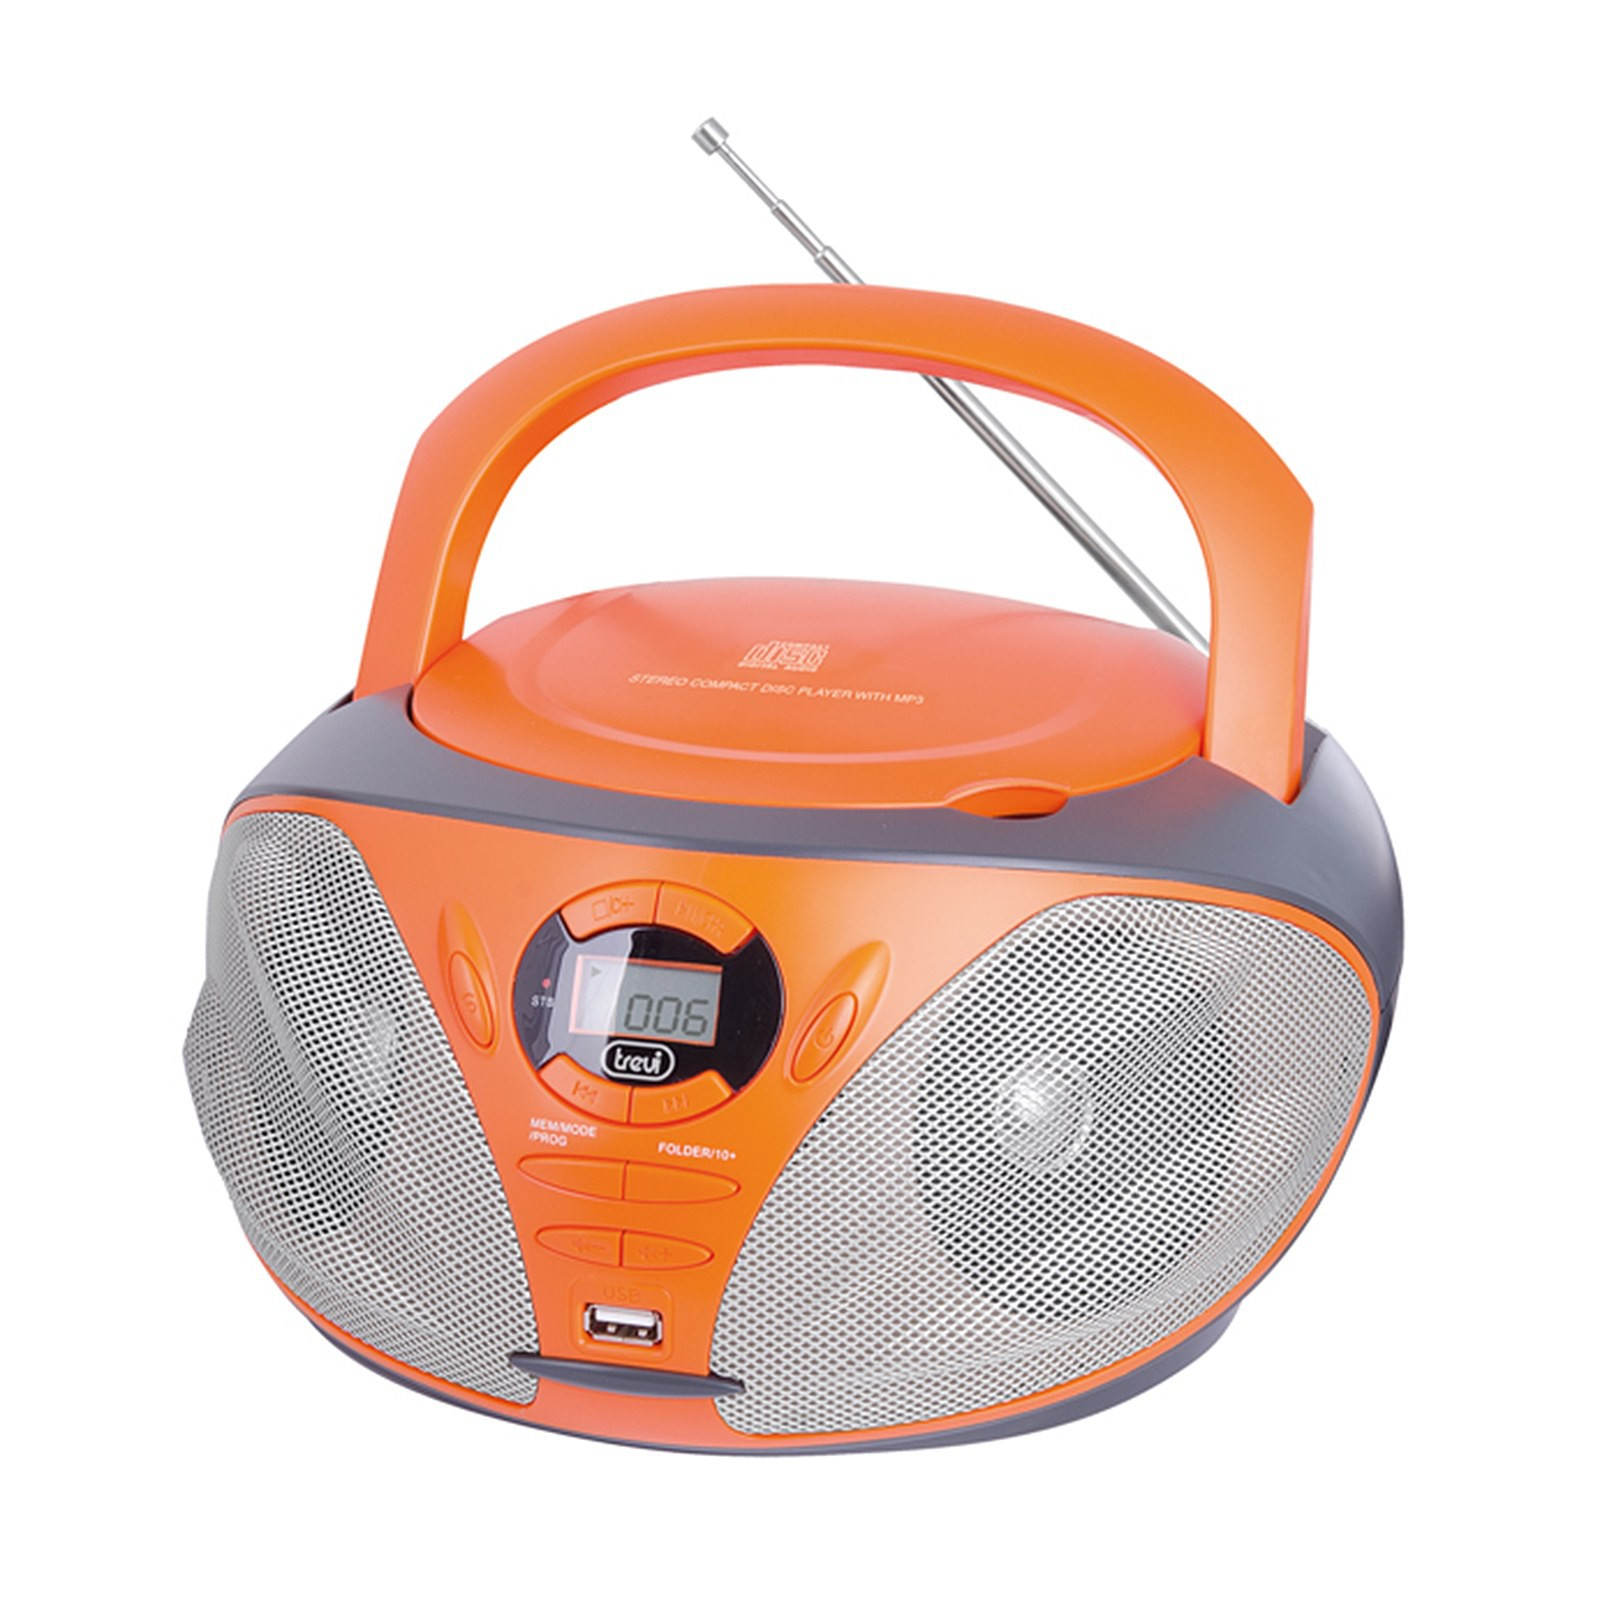 Radio stereo portatile cd ingresso usb radio am fm aux for Radio con chiavetta usb